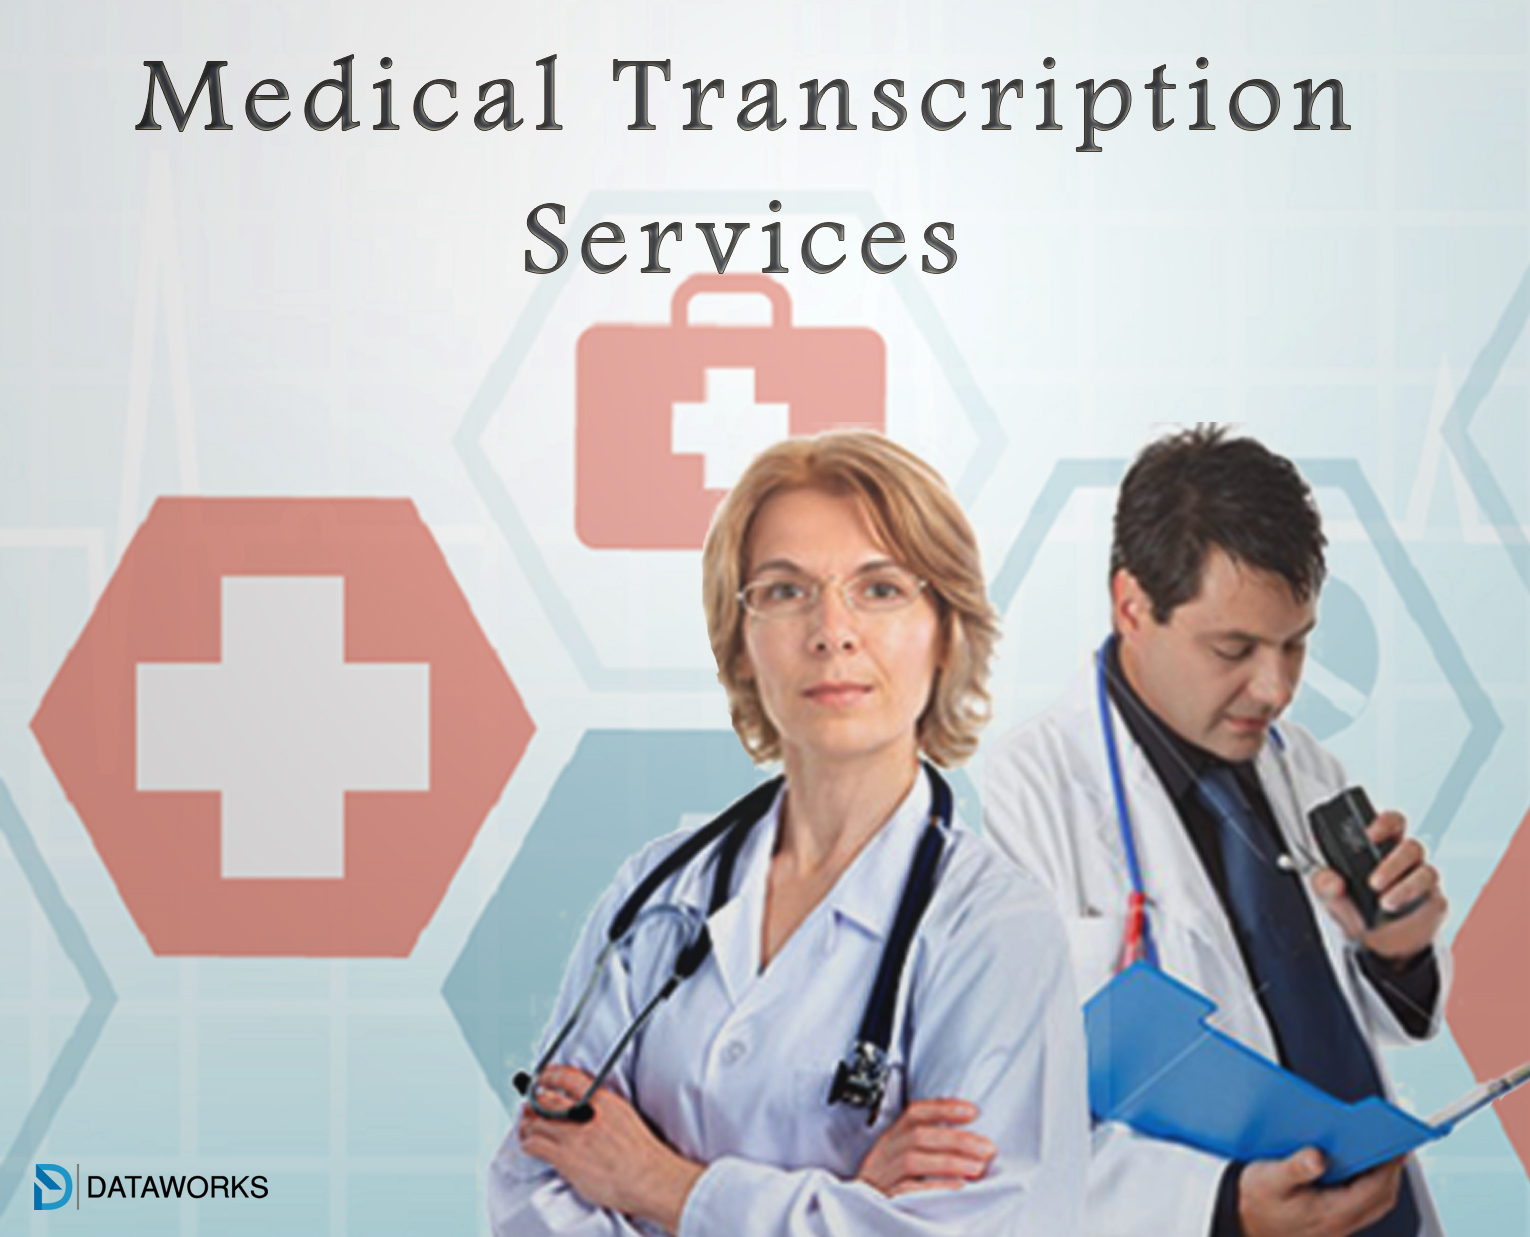 Should you outsource medical transcription services or do it in-house?